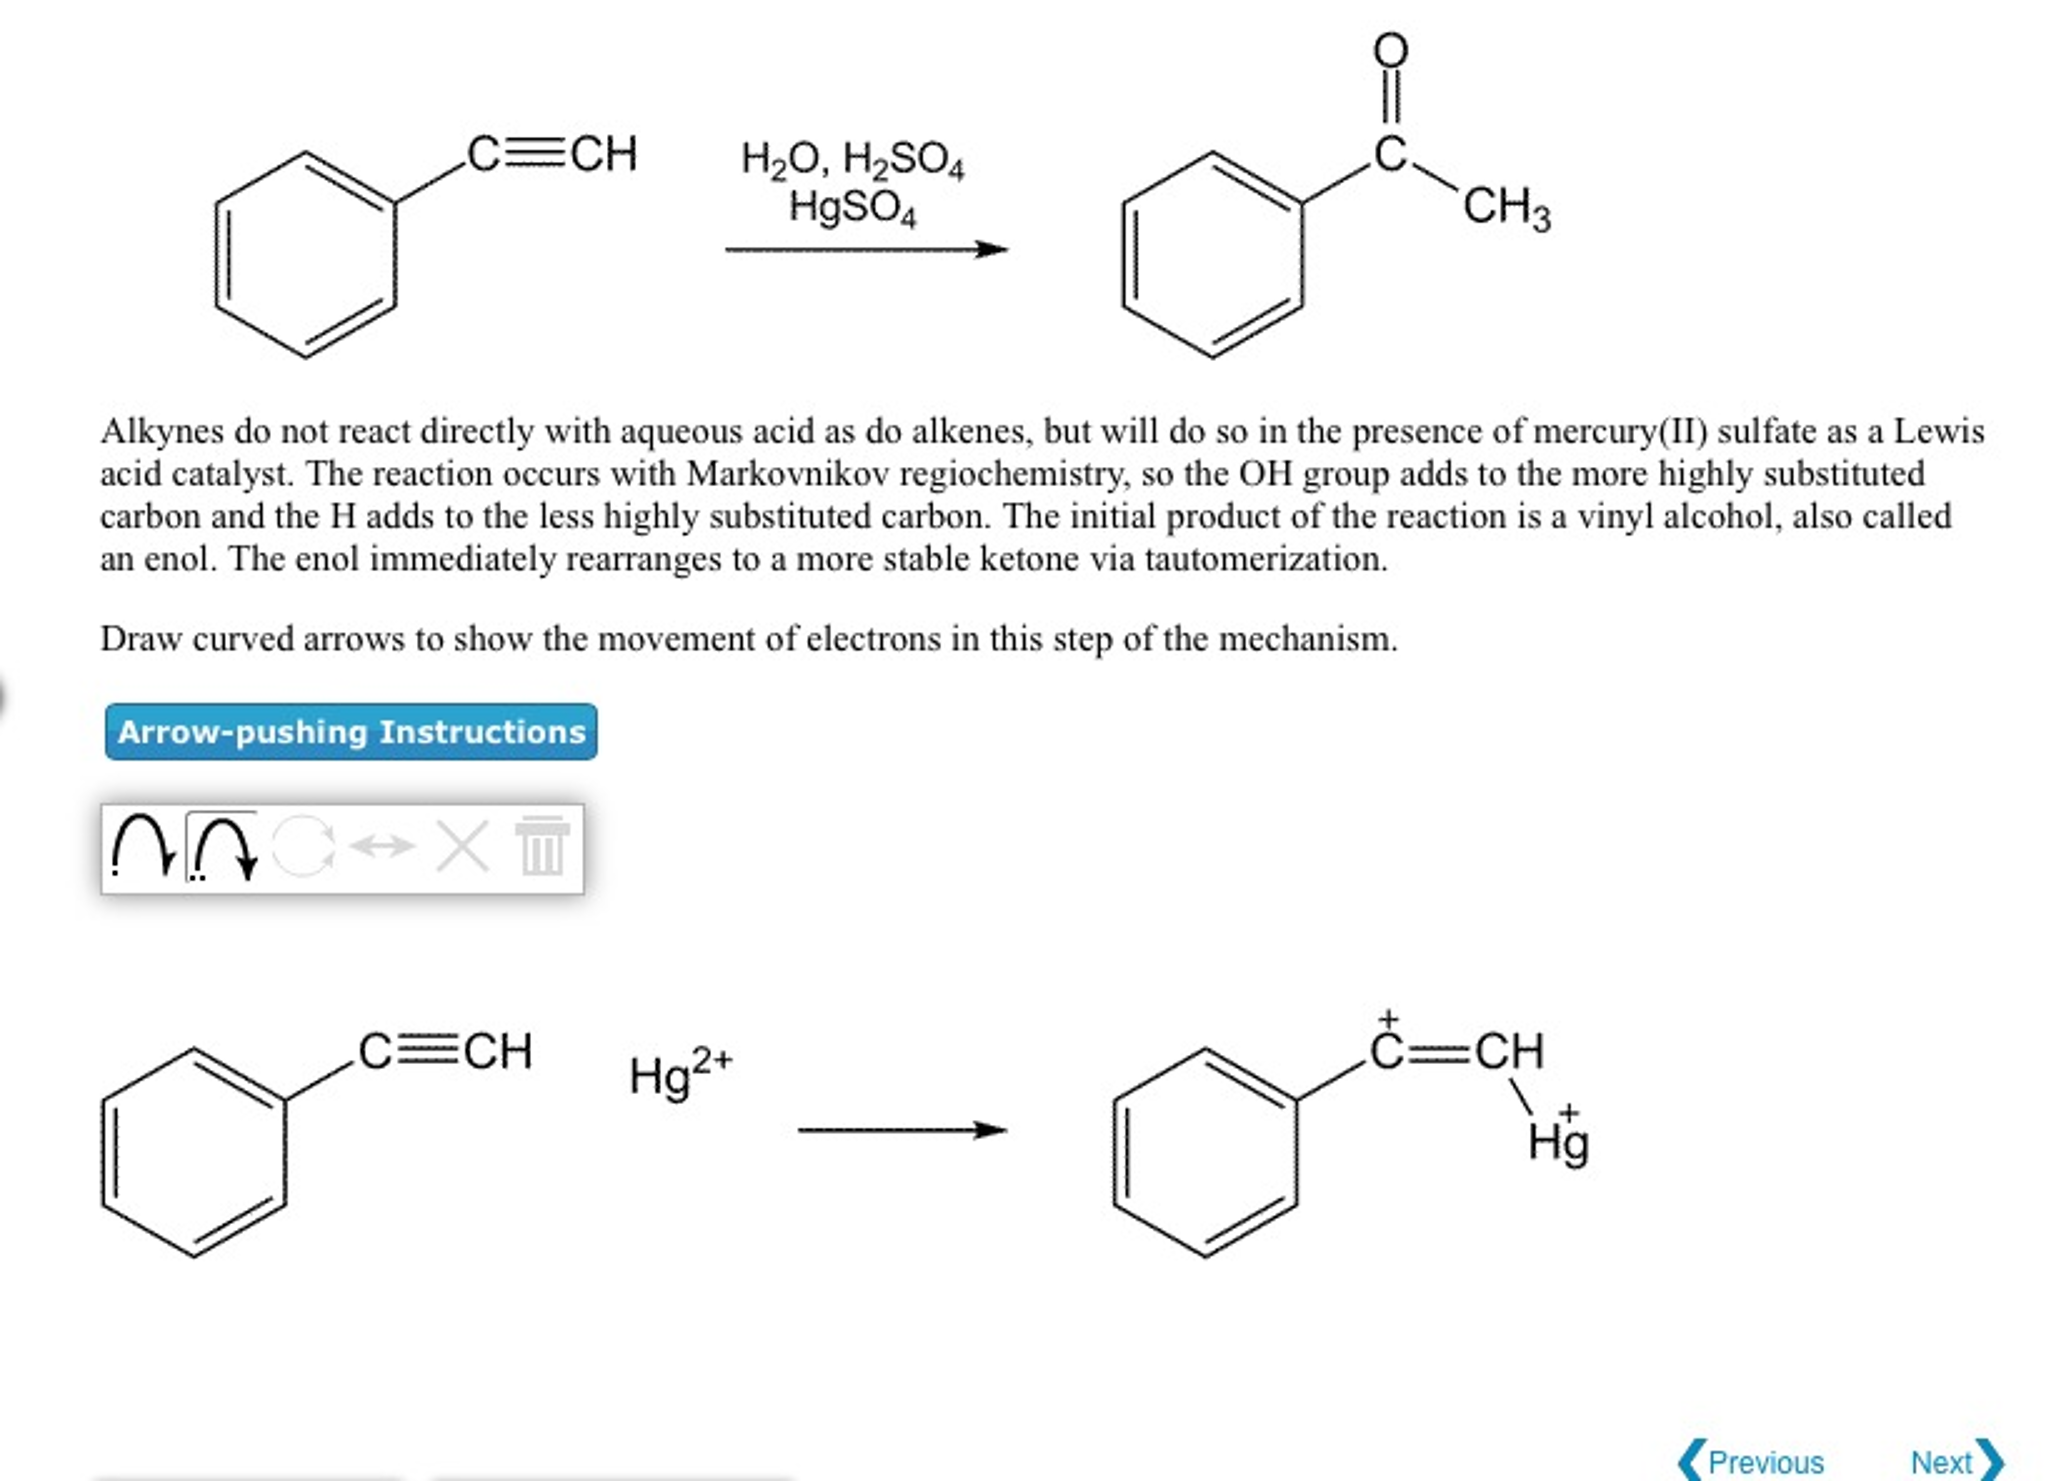 Solved: Alkynes Do Not React Directly With Aqueous Acid As